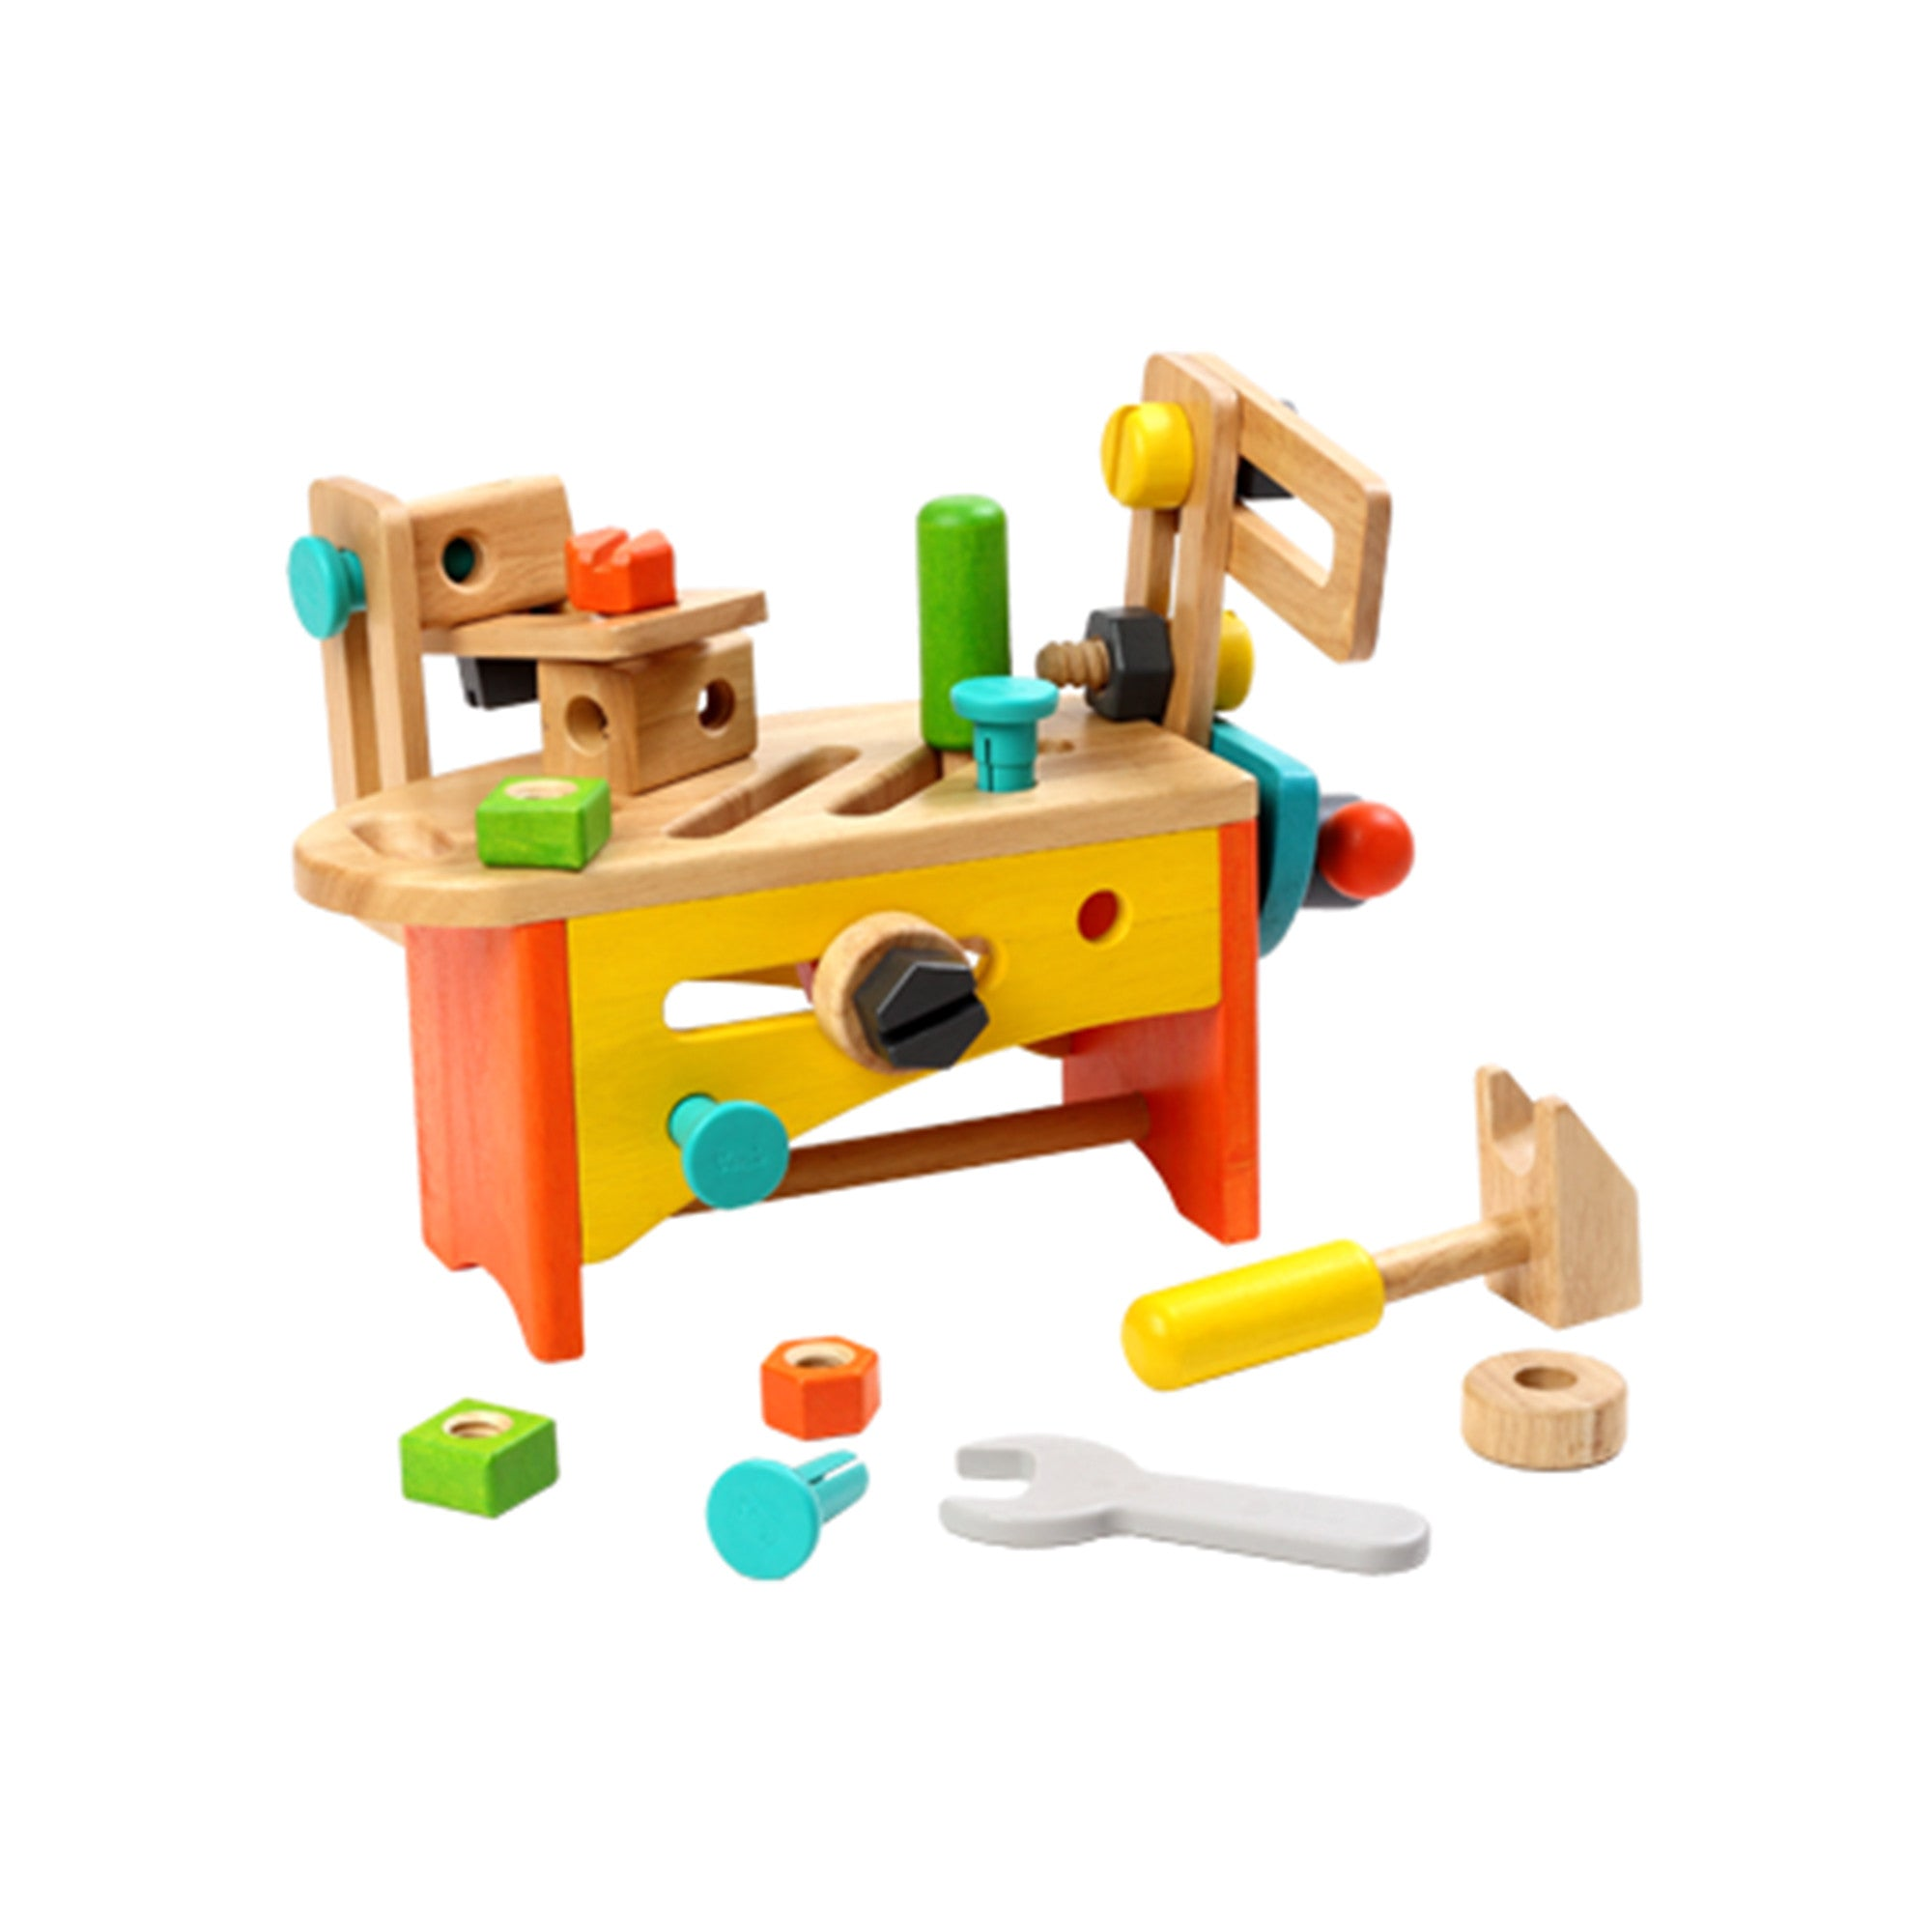 Wooden Toy Tool Set Tool Kit   - Voila - Little Earth Nest - 1